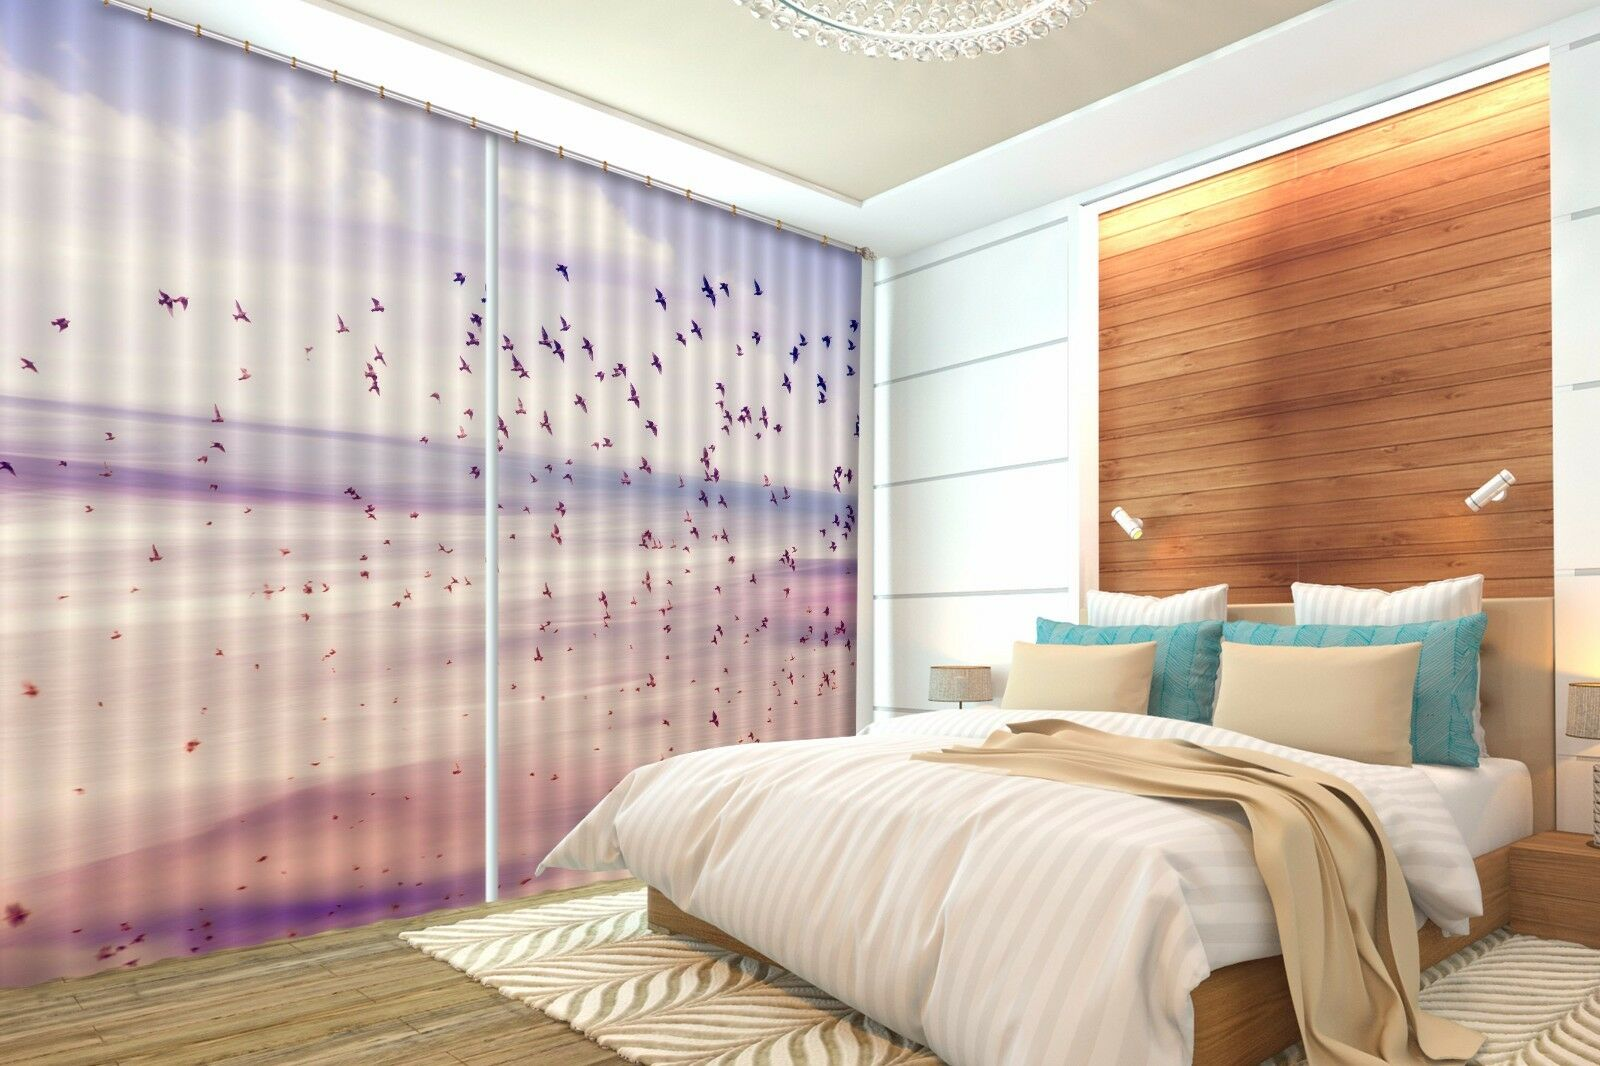 3D Geese View 32Blockout Photo Curtain Printing Curtains Drapes Fabric Window CA